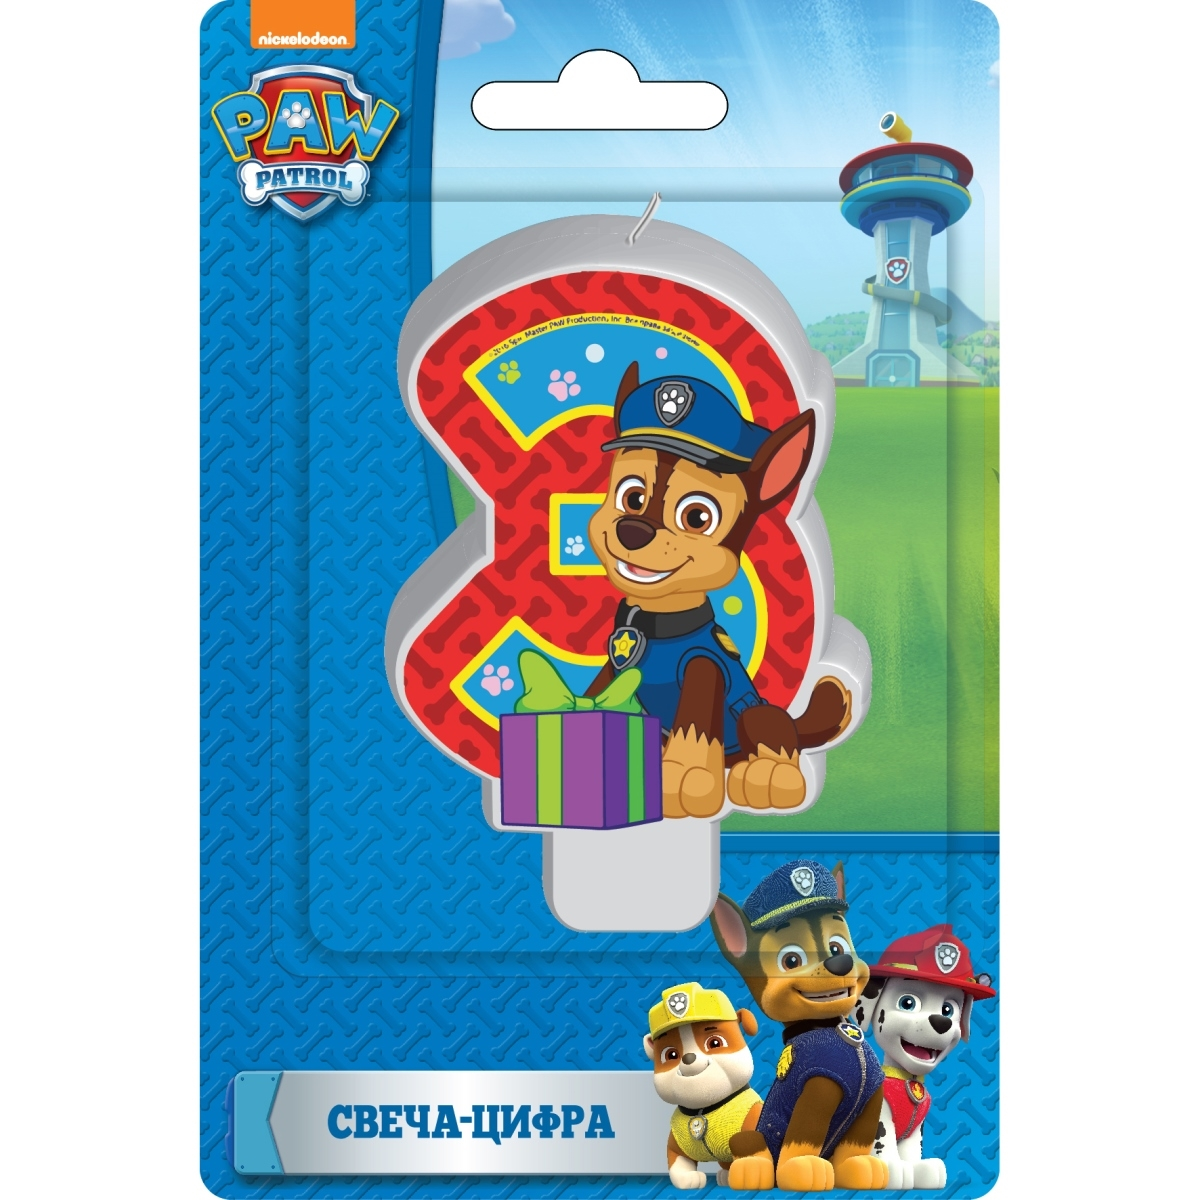 Paw Patrol Paw Patrol Paw Patrol Цифра 3 20cm canine patrol dog toys russian anime doll action figures car patrol puppy toy patrulla canina juguetes gift for child m134